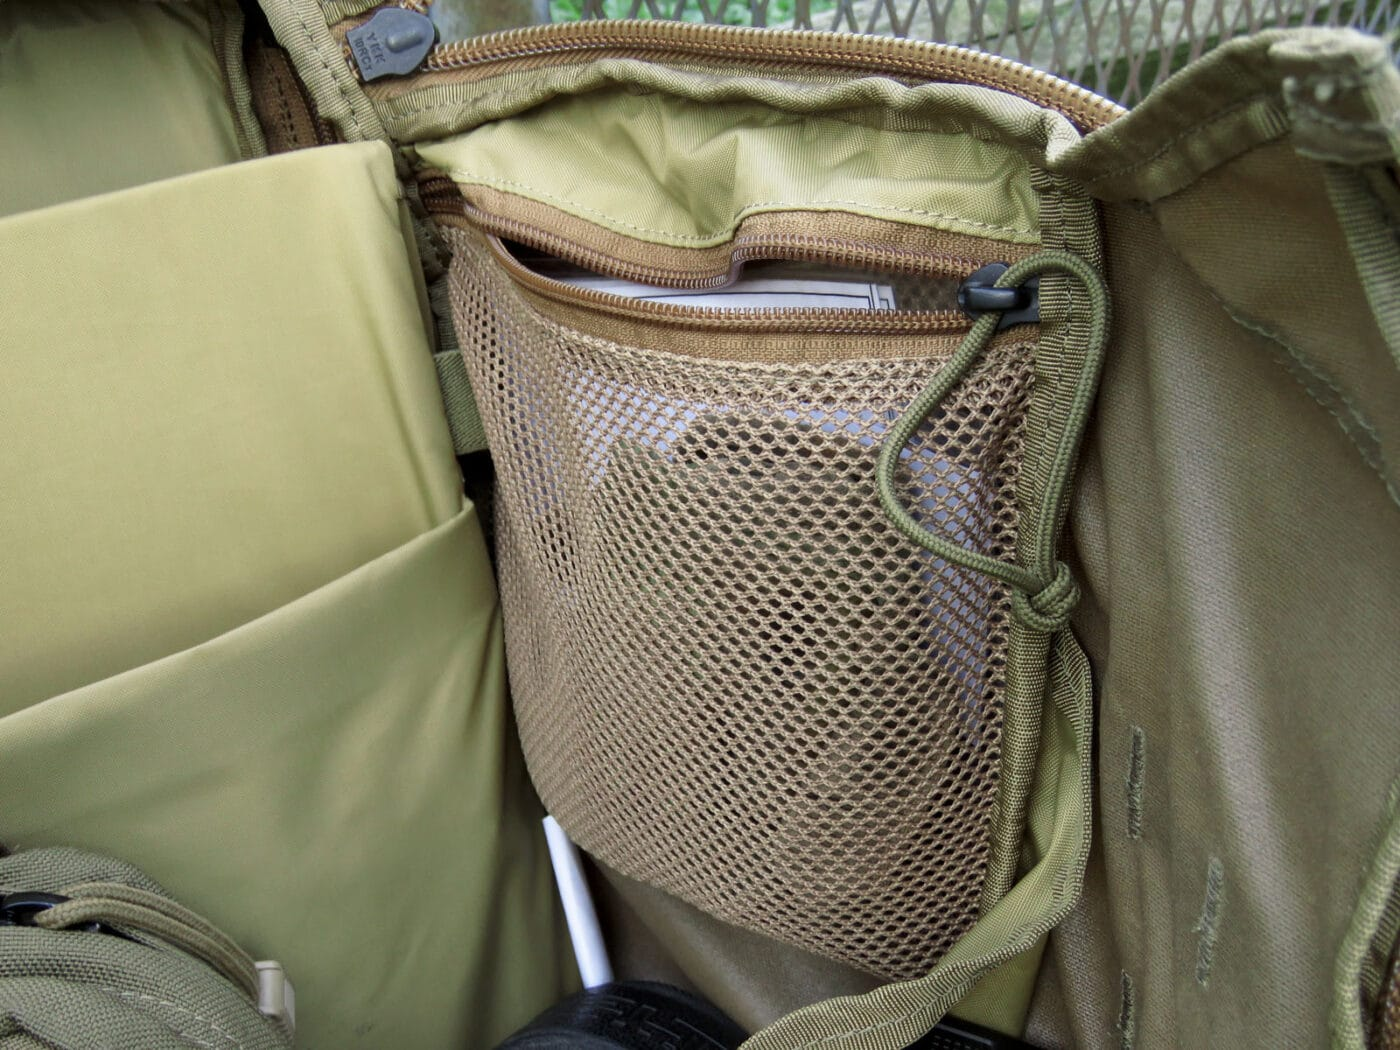 Storage compartment on Mystery Ranch backpack